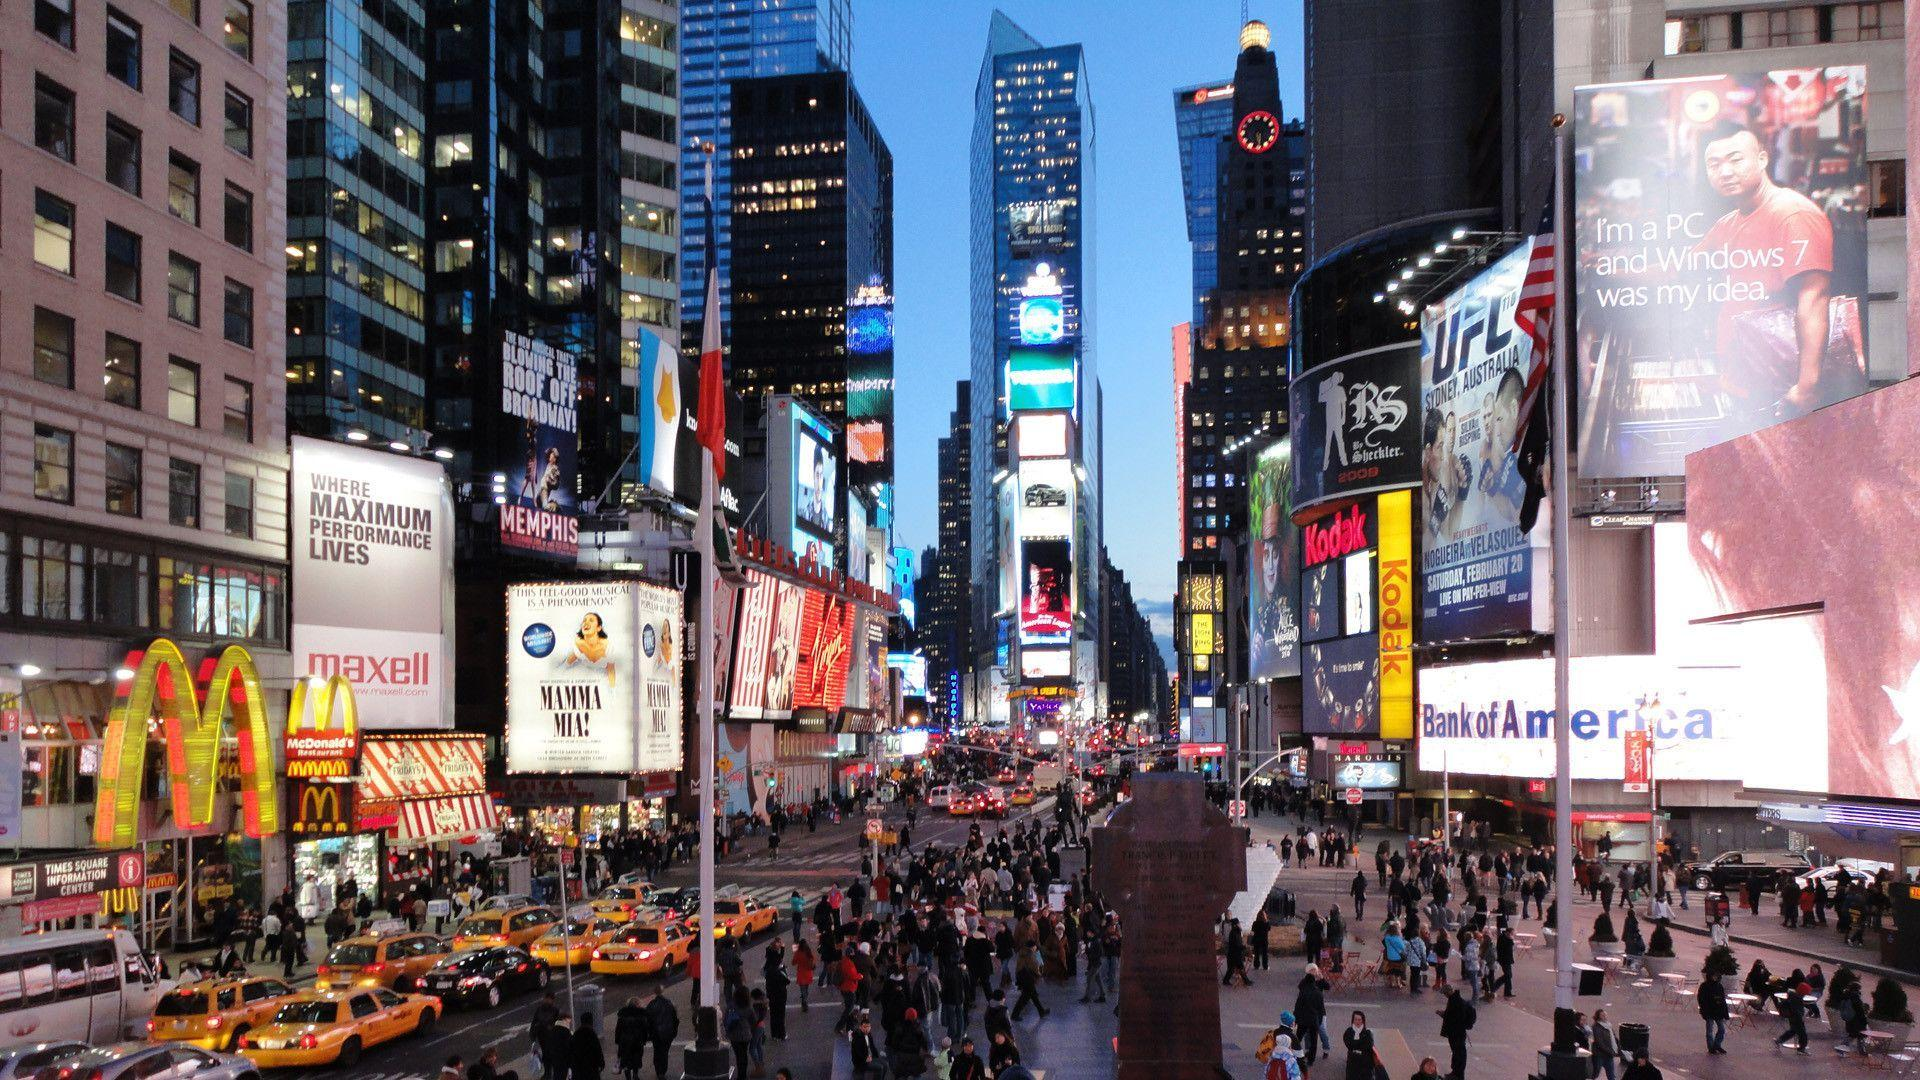 New Years Eve Wallpaper Iphone 6 Times Square Wallpapers Wallpaper Cave